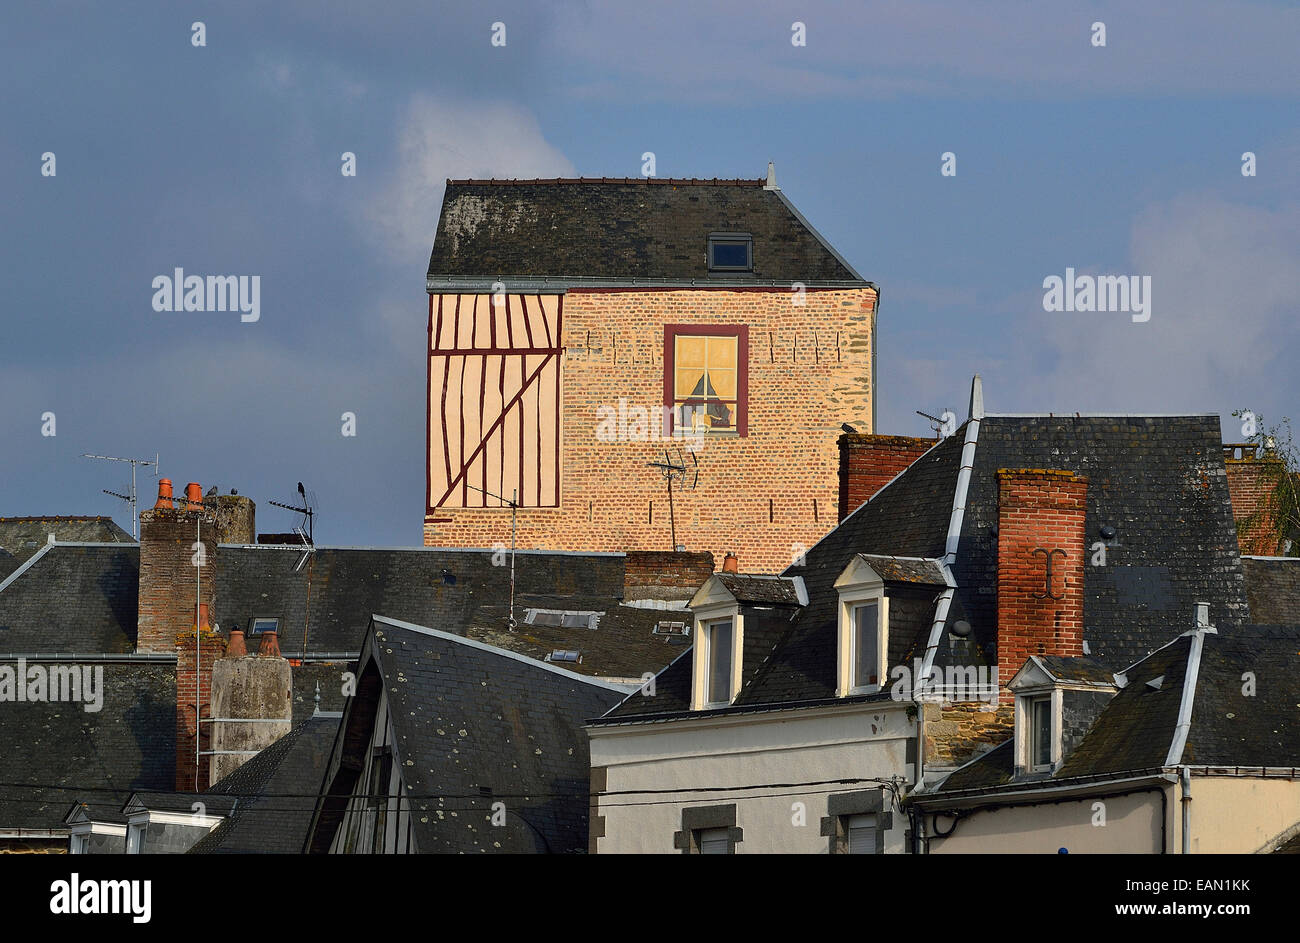 Mayenne City, Old Buildings, Mayenne City, A Trompe Lu0027oeil Wall Mural On A  House (Loire Country, France).